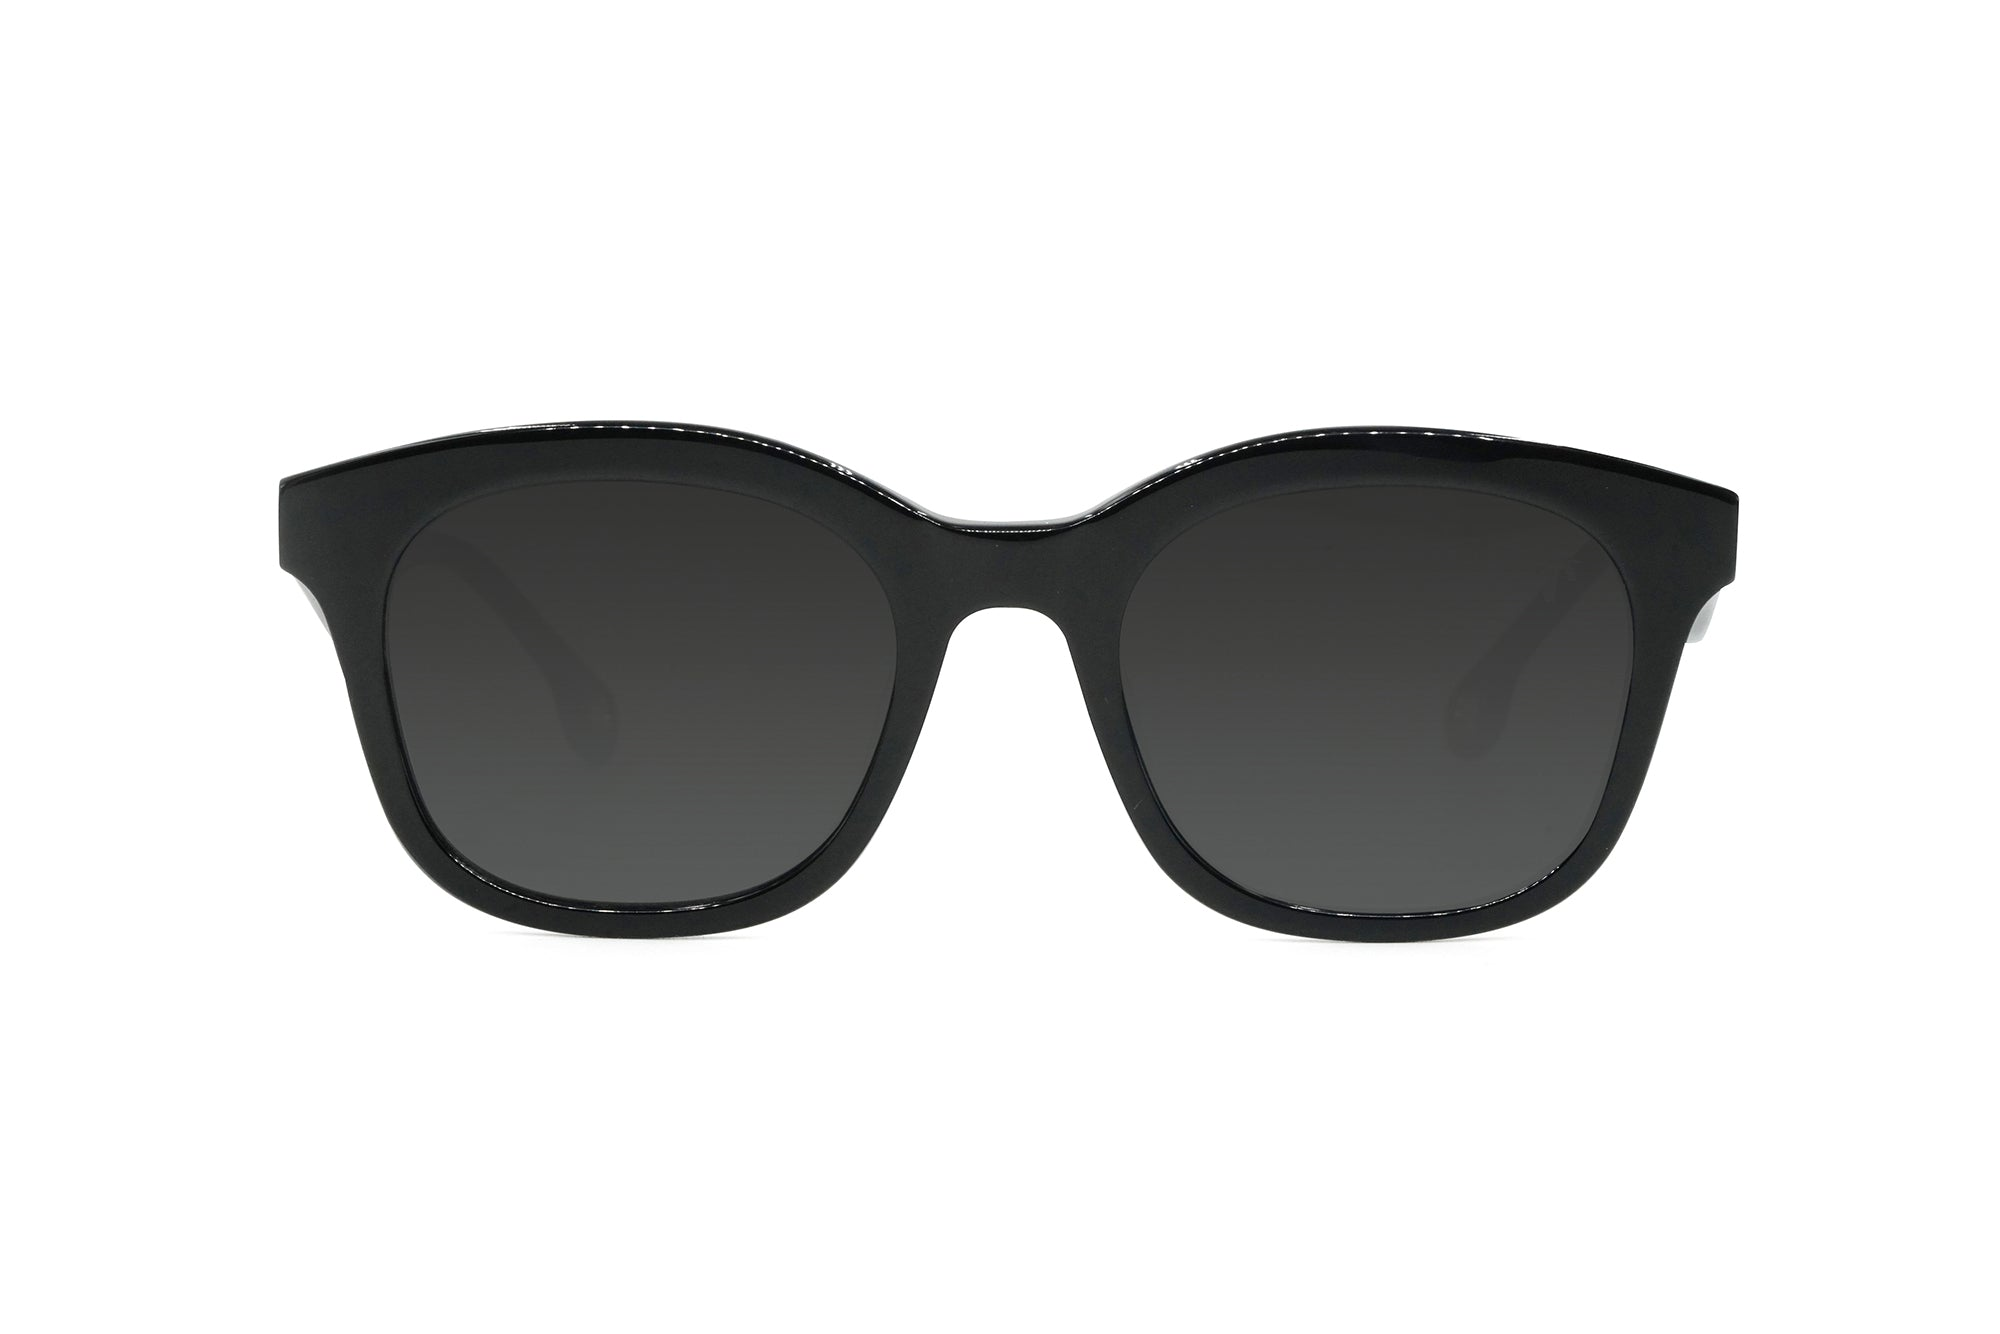 TenWest in Black - Peppertint - Designer sunglasses